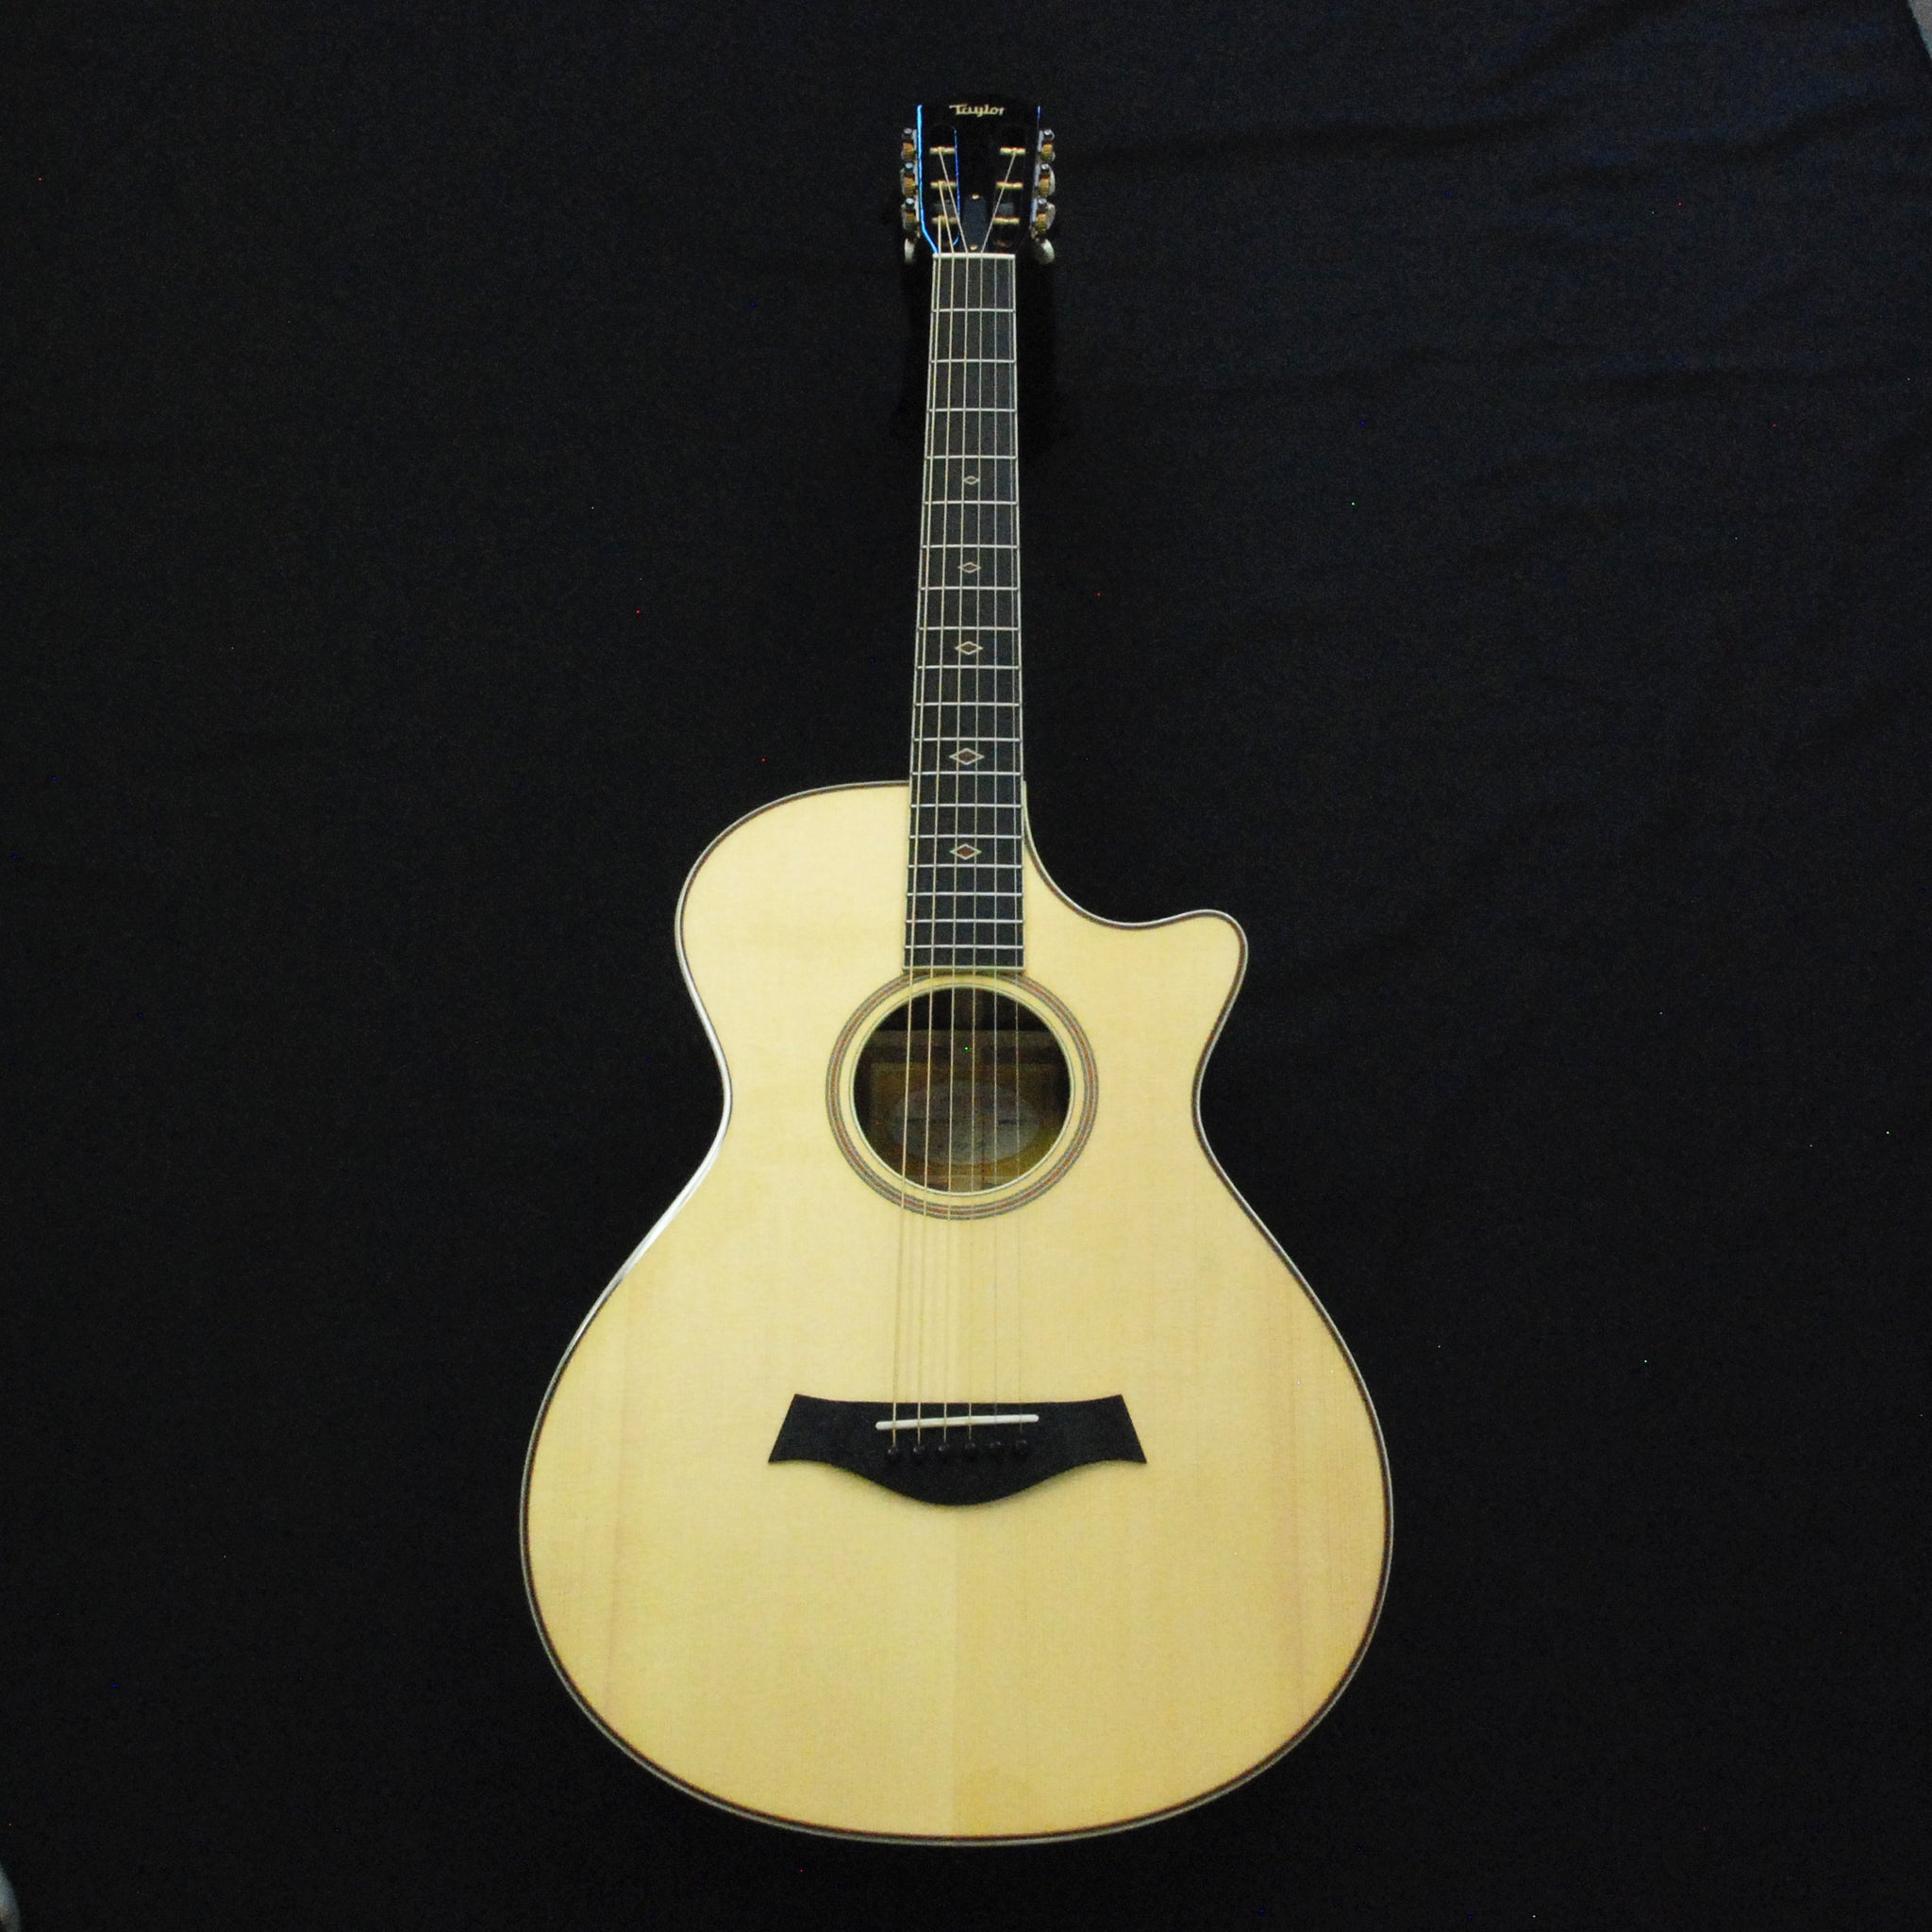 Shop online for Taylor 12-Fret GCce Fall Limited Edition Acoustic Guitar - NOS today. Now available for purchase from Midlothian Music of Orland Park, Illinois, USA